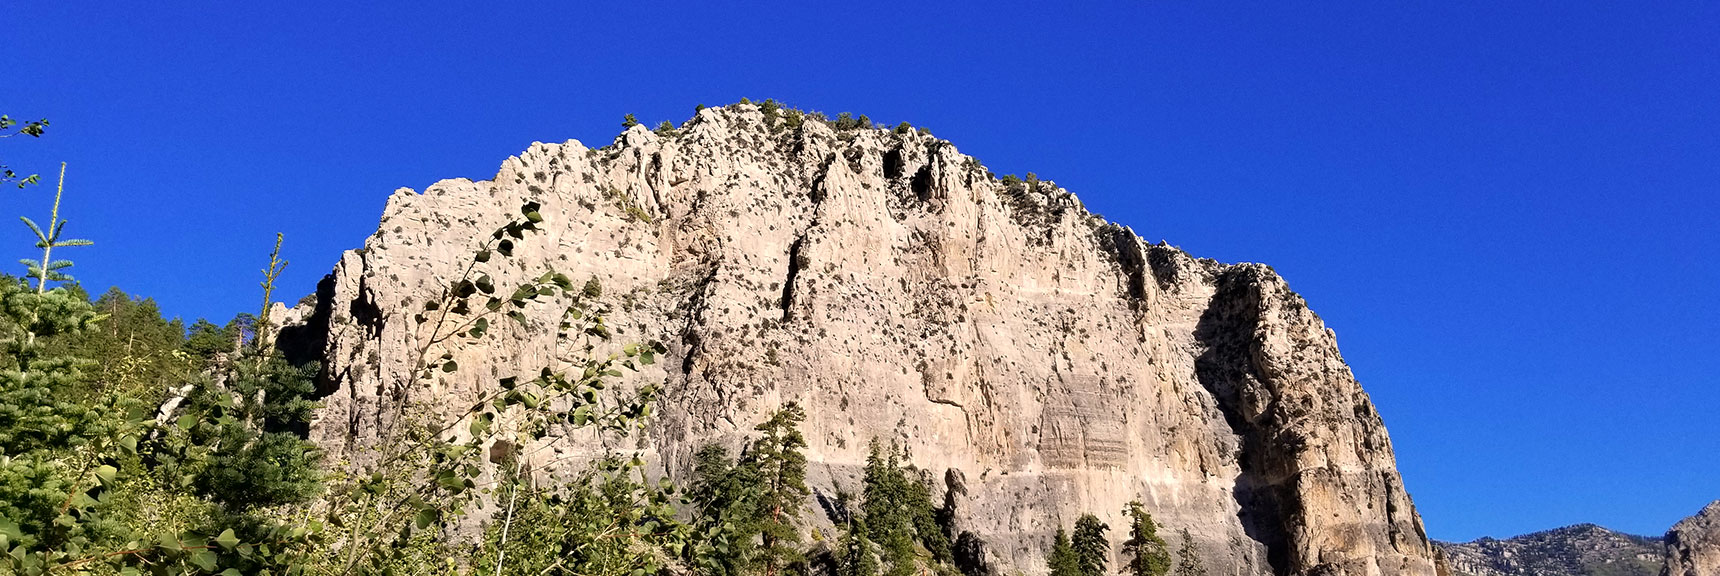 First Full View of Cathedral Rock Along Its Main Trail, Mt. Charleston Wilderness, Nevada